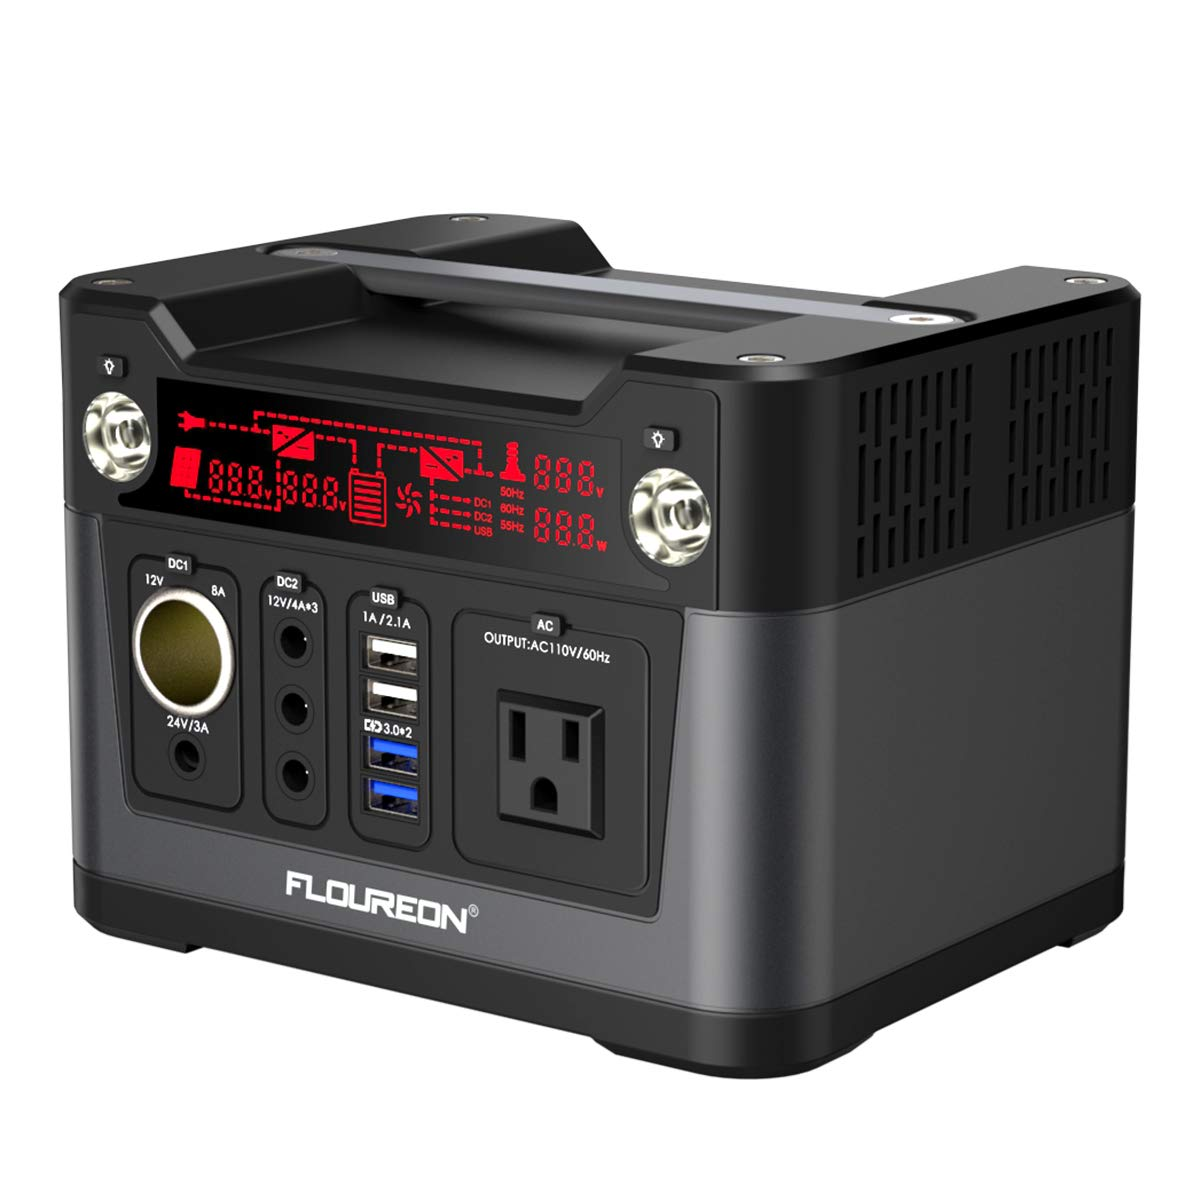 floureon 300W 280Wh/78000mAh Portable Power Station Solar Generator Power Supply Solar with 110V AC Outlet, QC3.0 USB, 12V/24V DC, Charged by Solar Panel/Wall Outlet/Car Charger